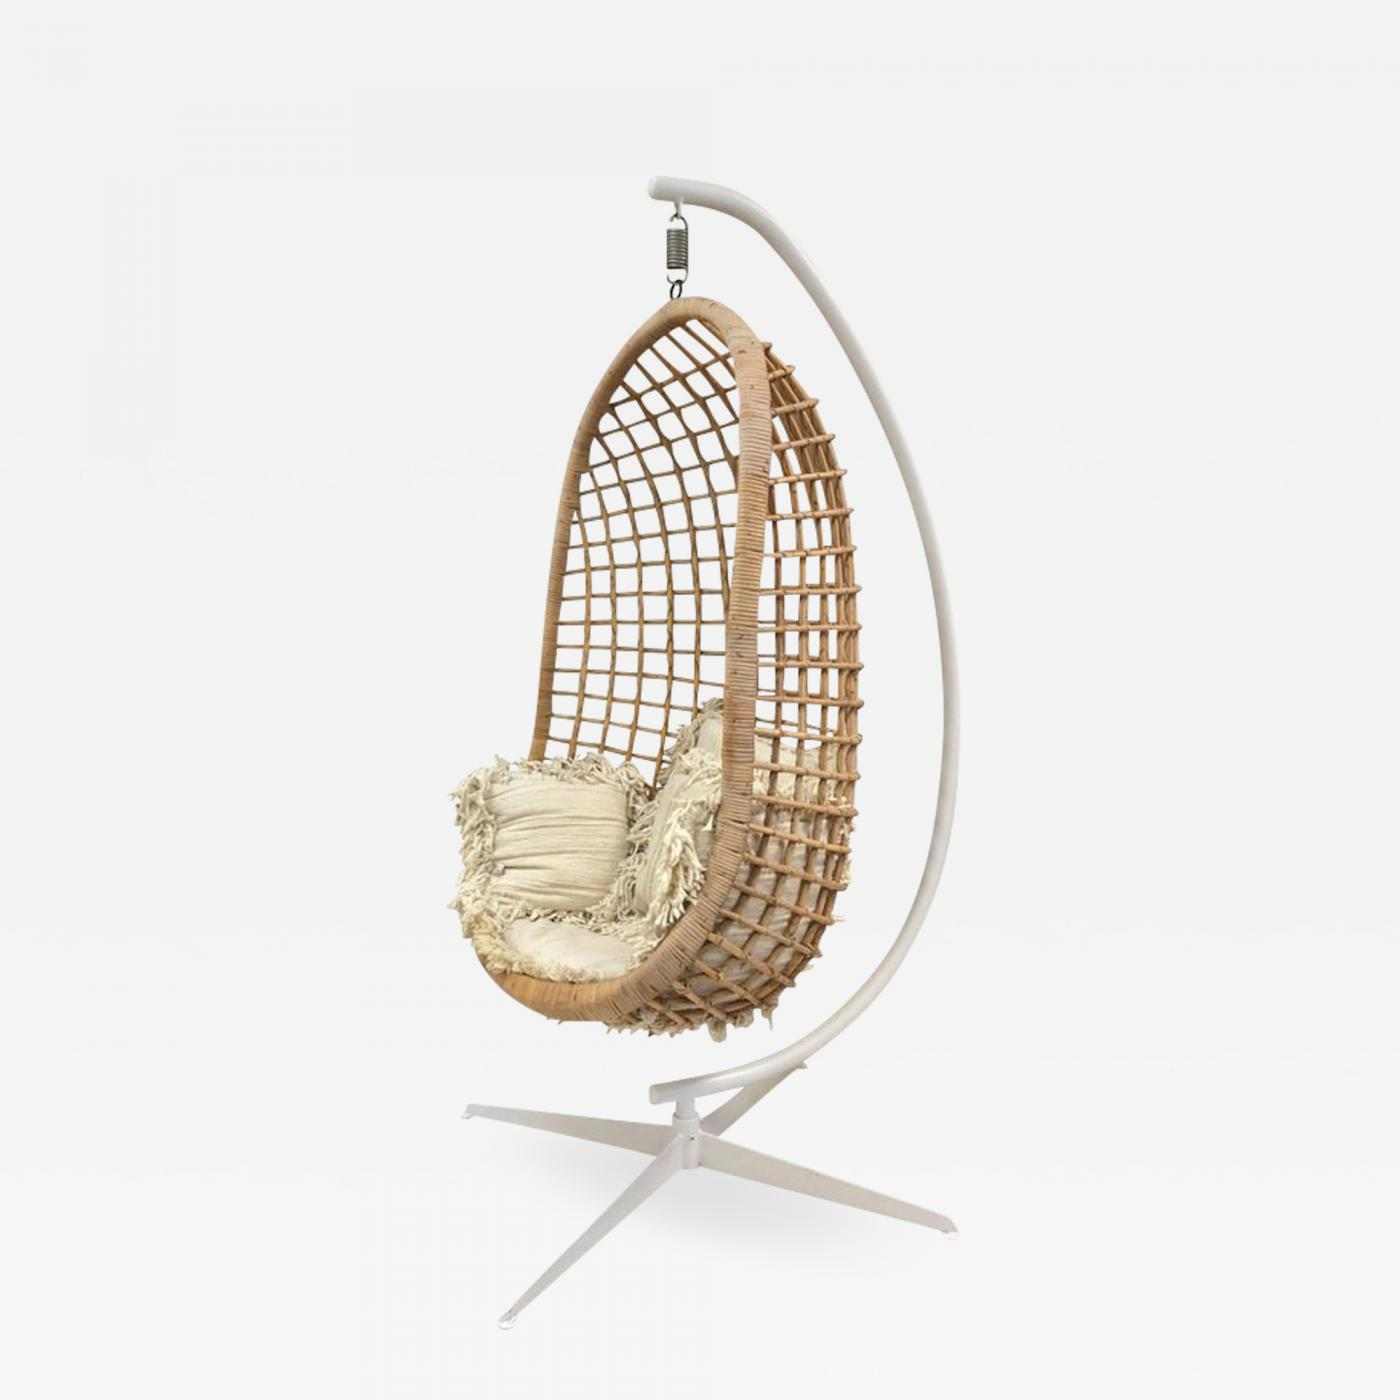 1960s rattan swing chair. Black Bedroom Furniture Sets. Home Design Ideas